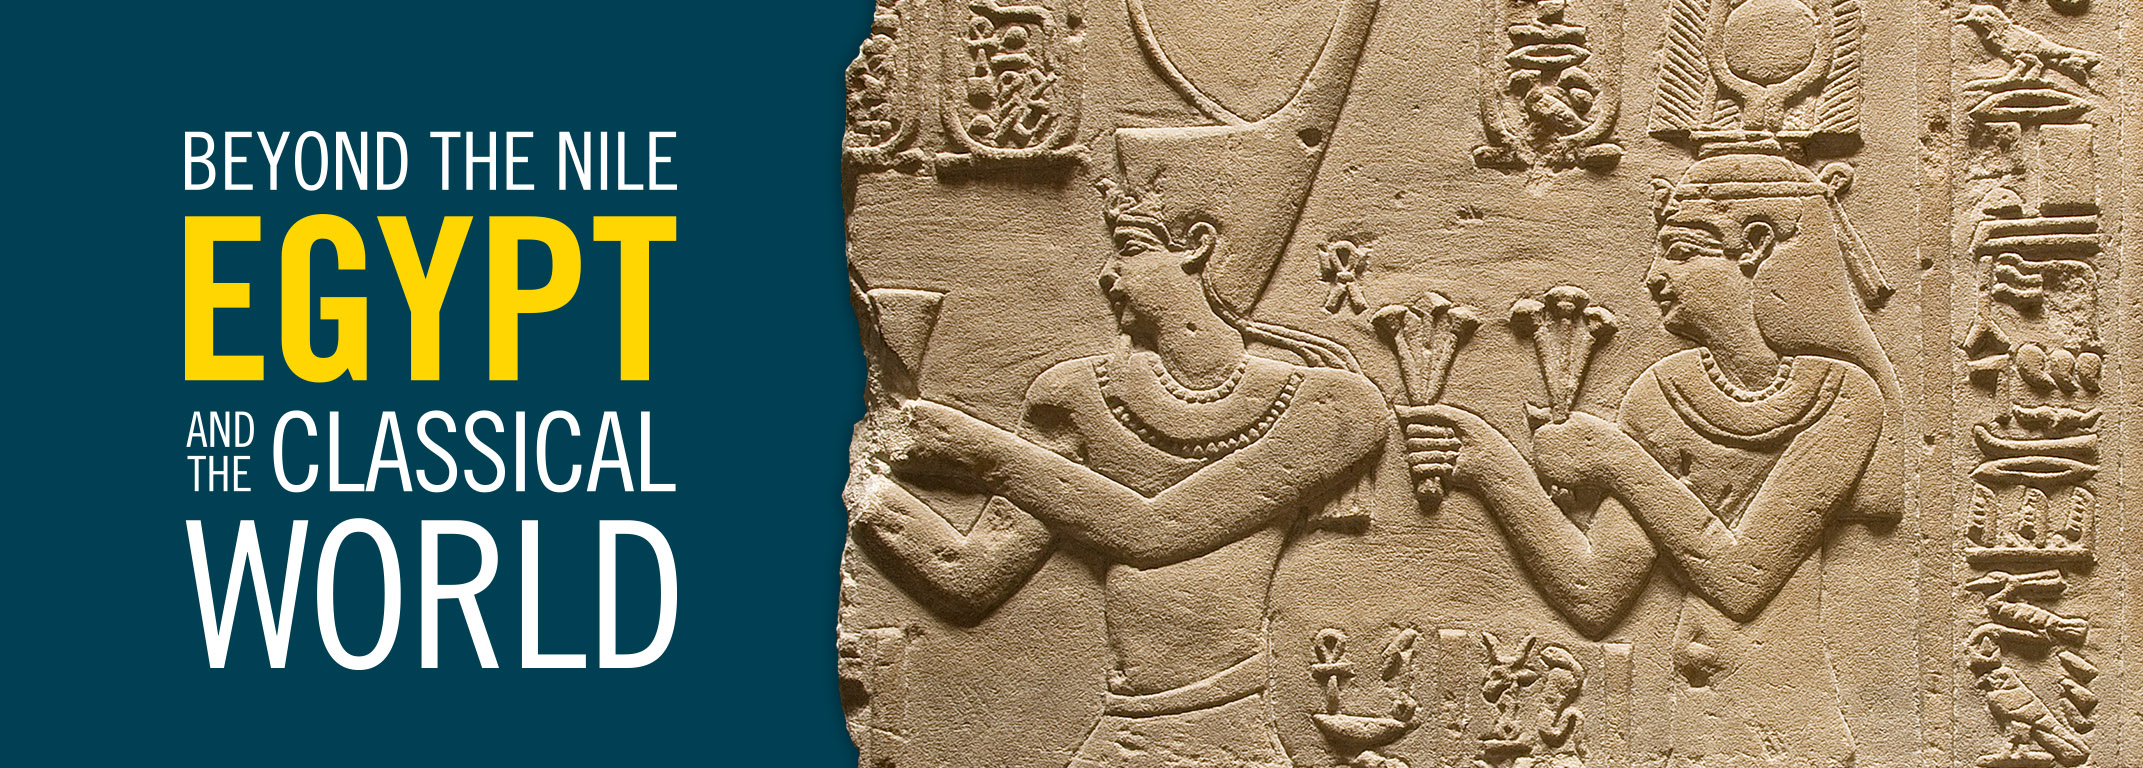 beyond the nile egypt and the classical world